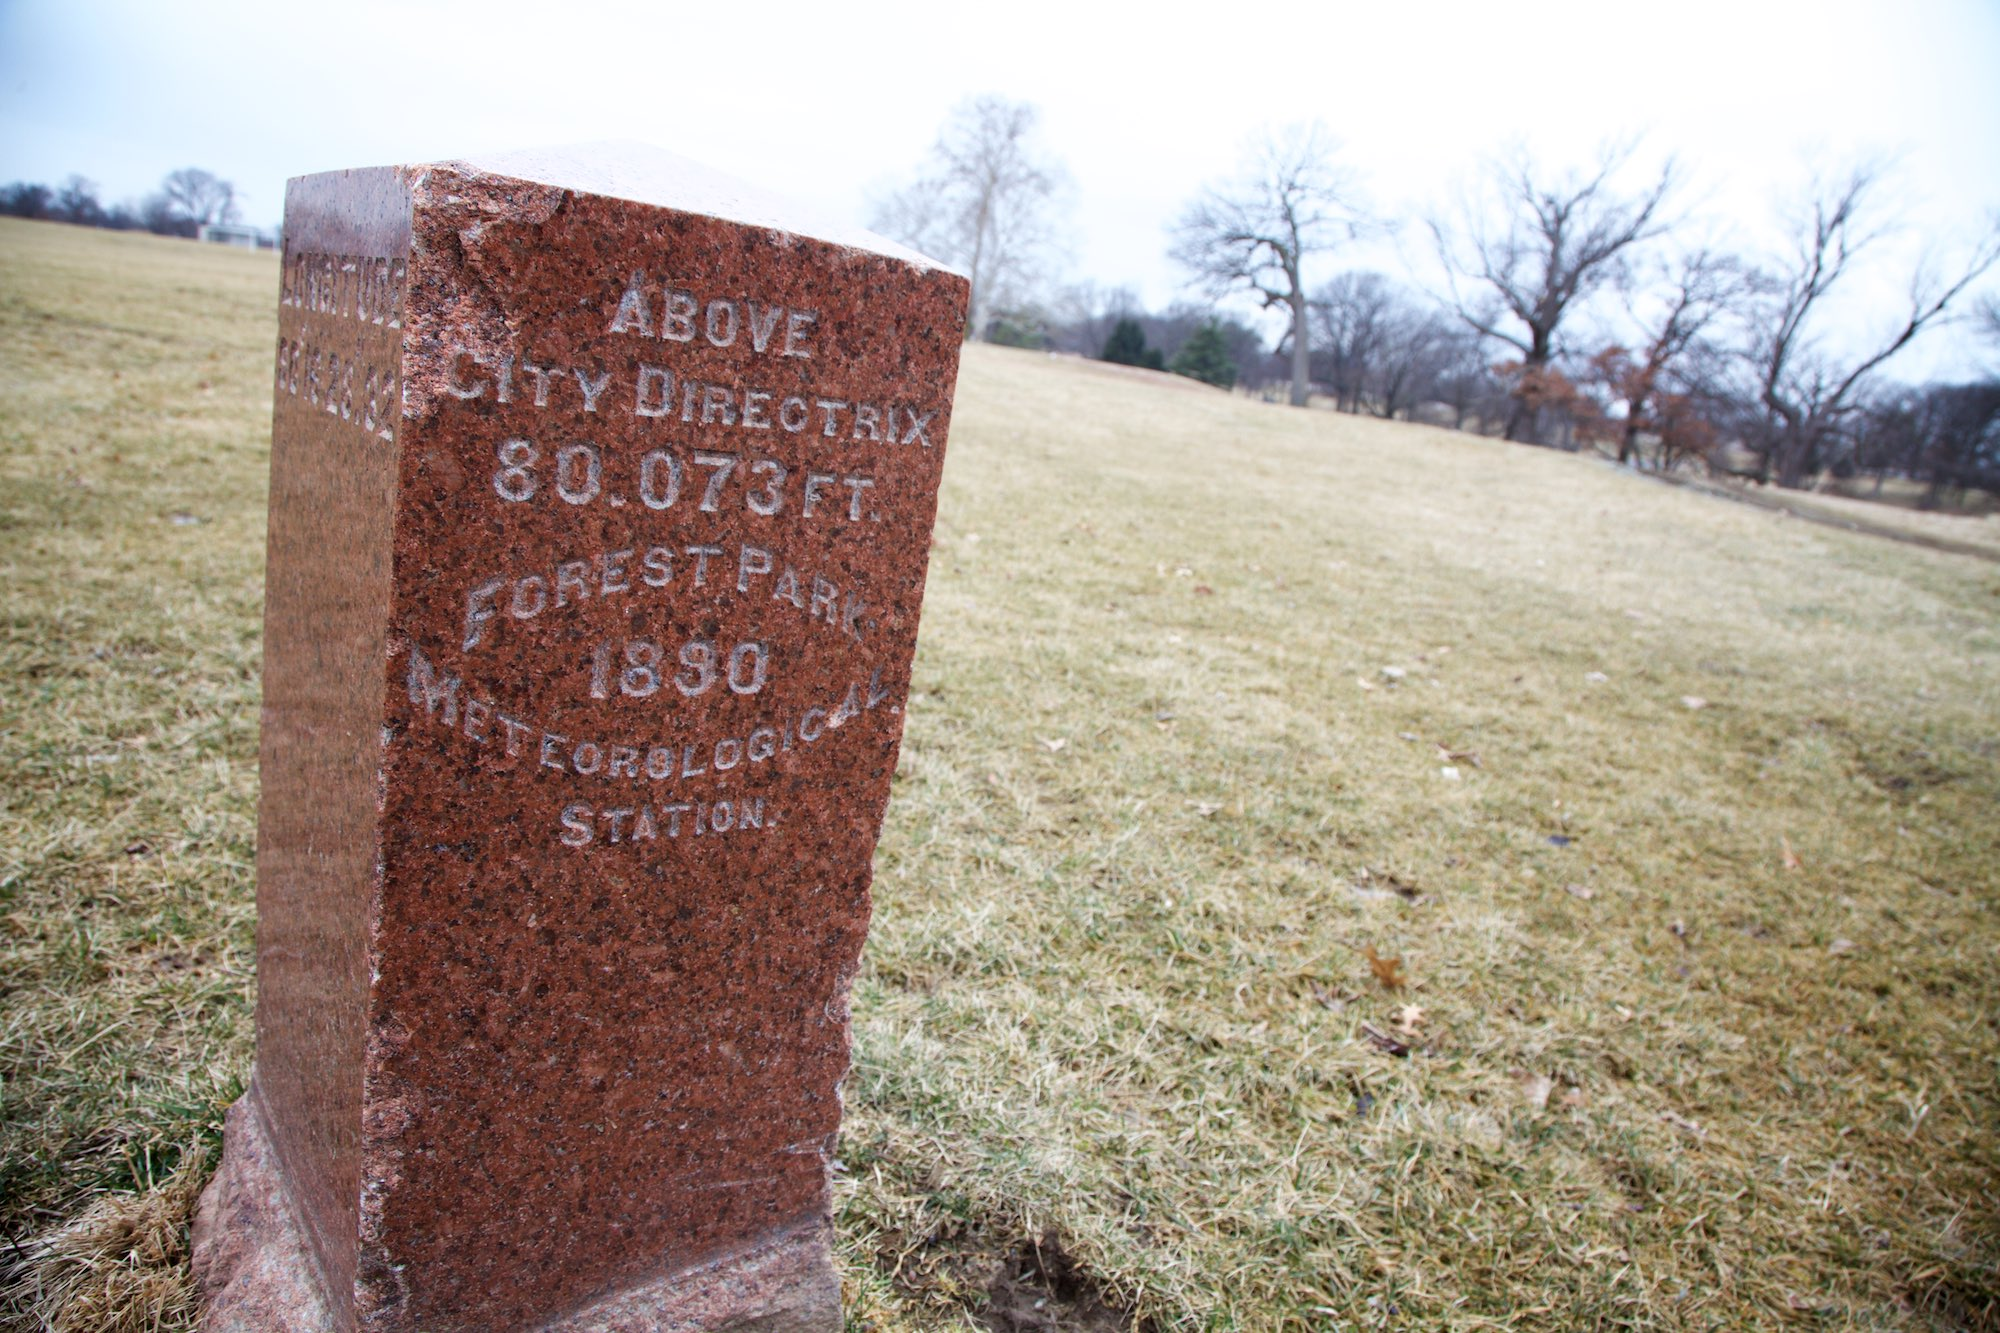 The second oldest man-made artifact in Forest Park (that we know of)